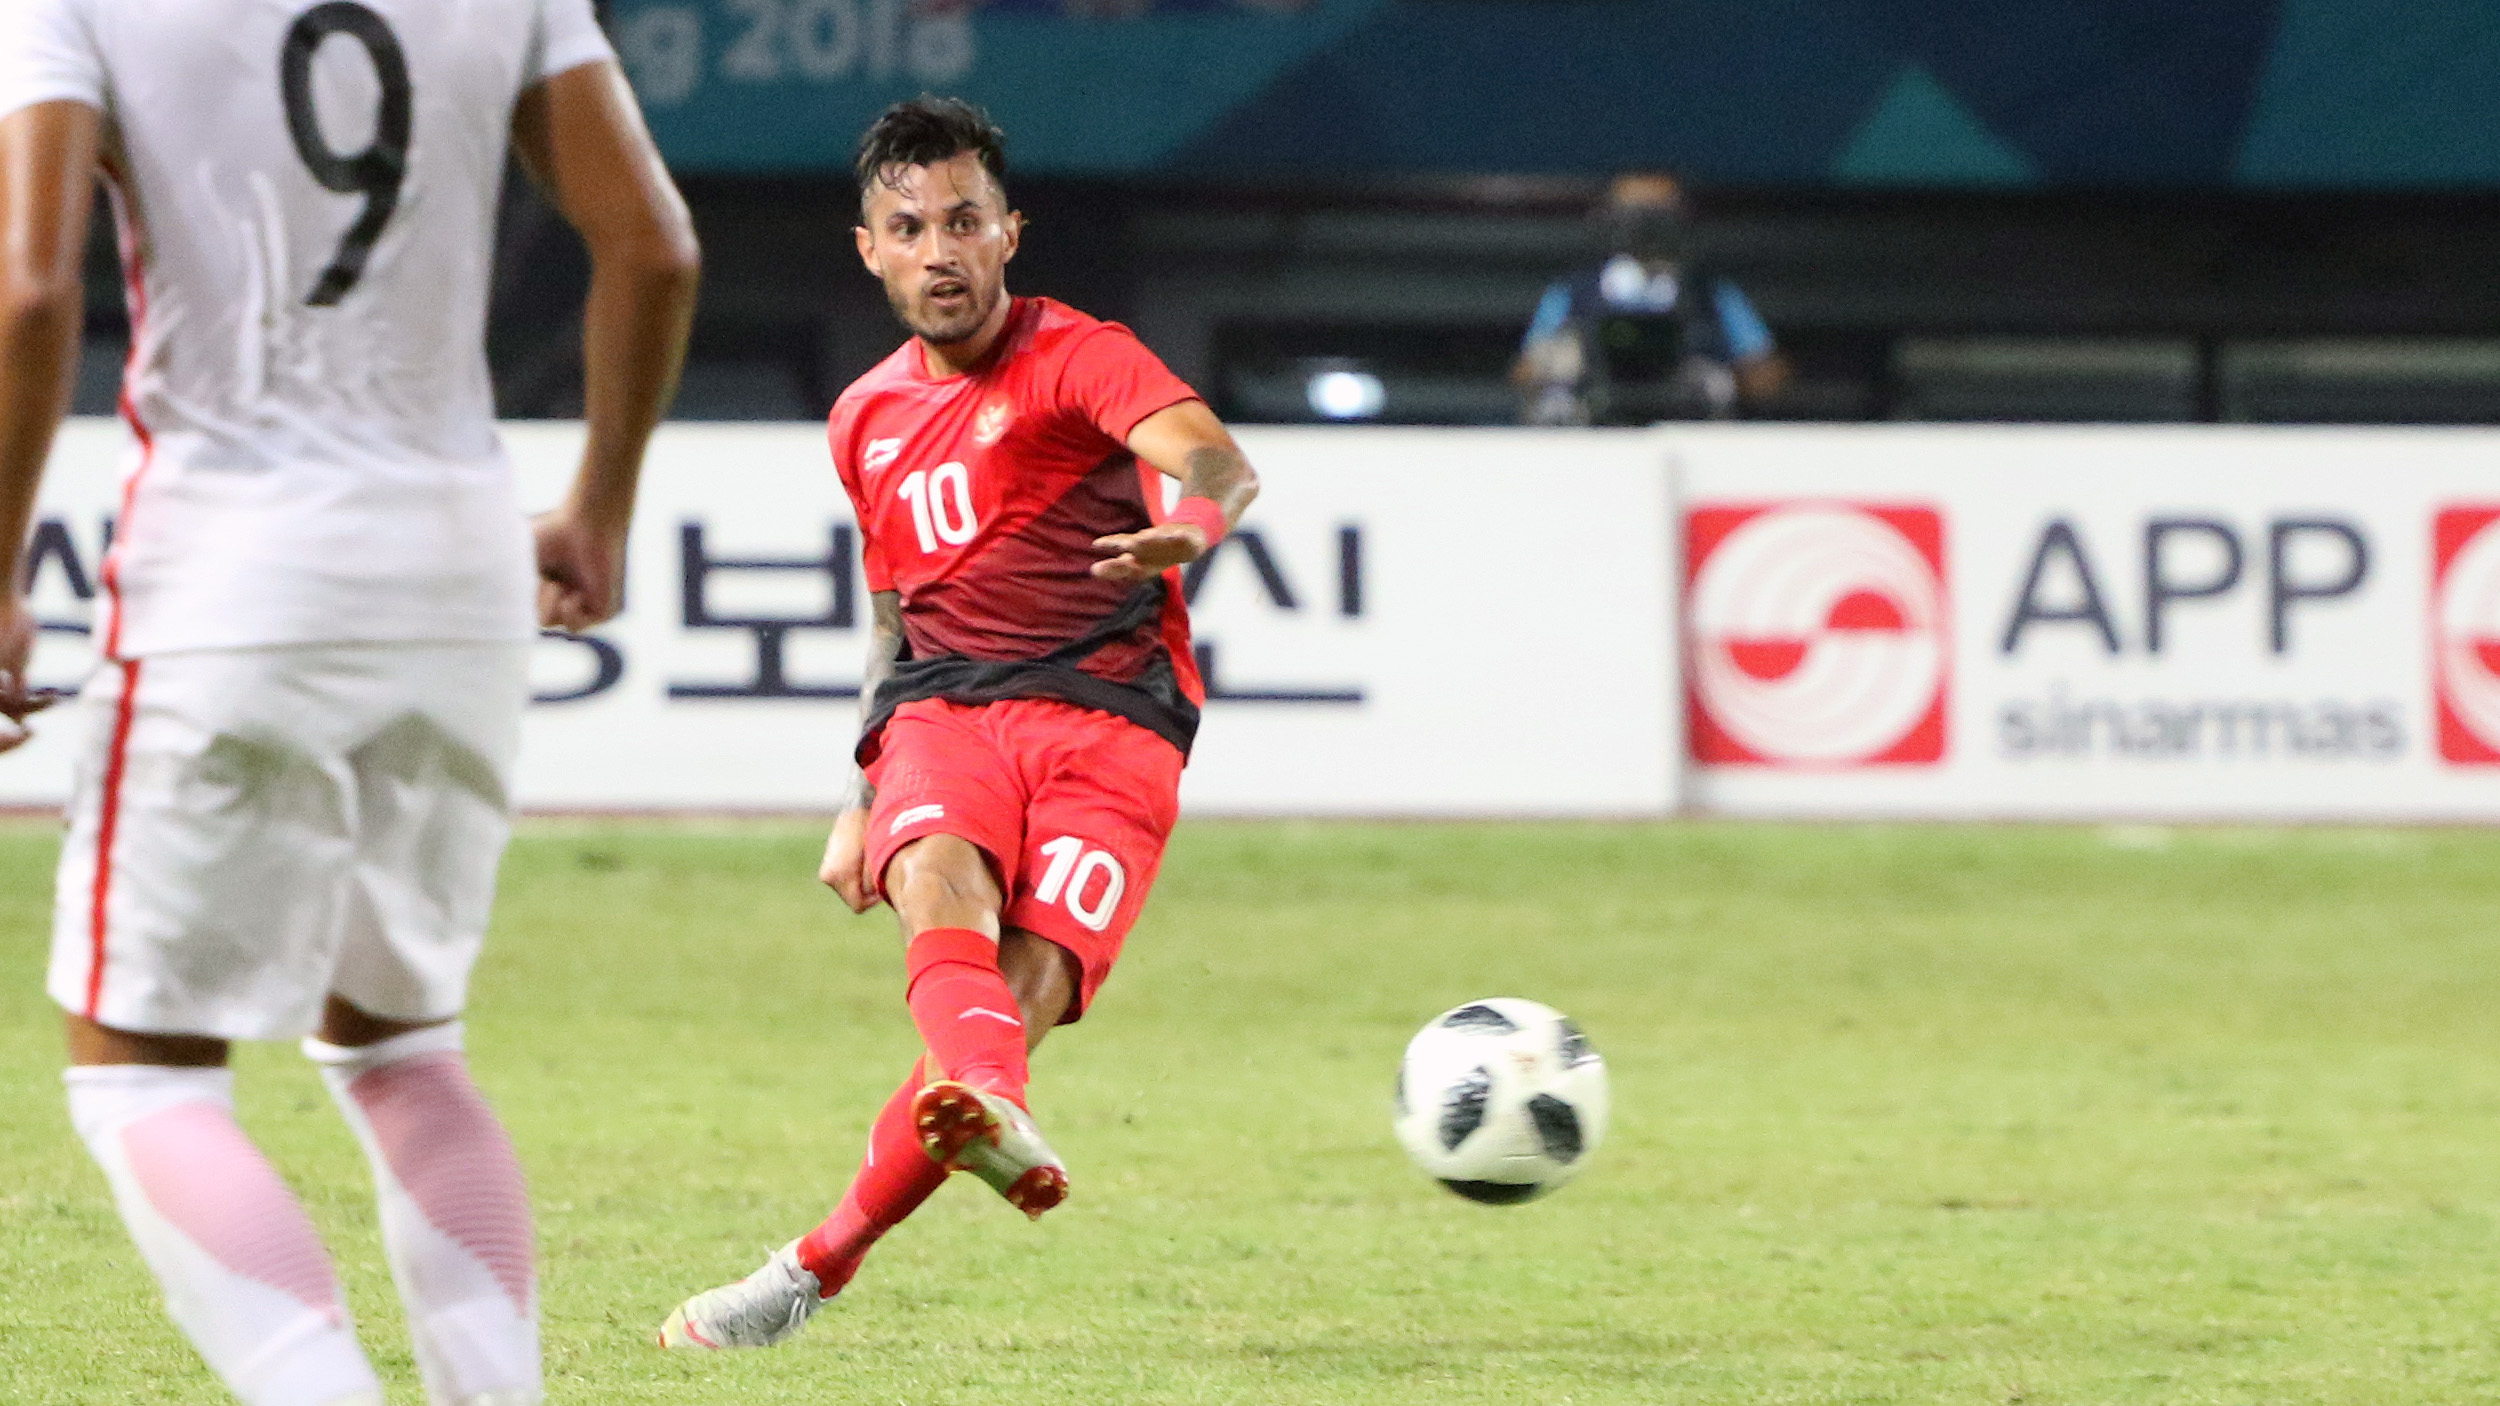 Stefano Lilipaly - Indonesia U-23 Asian Games